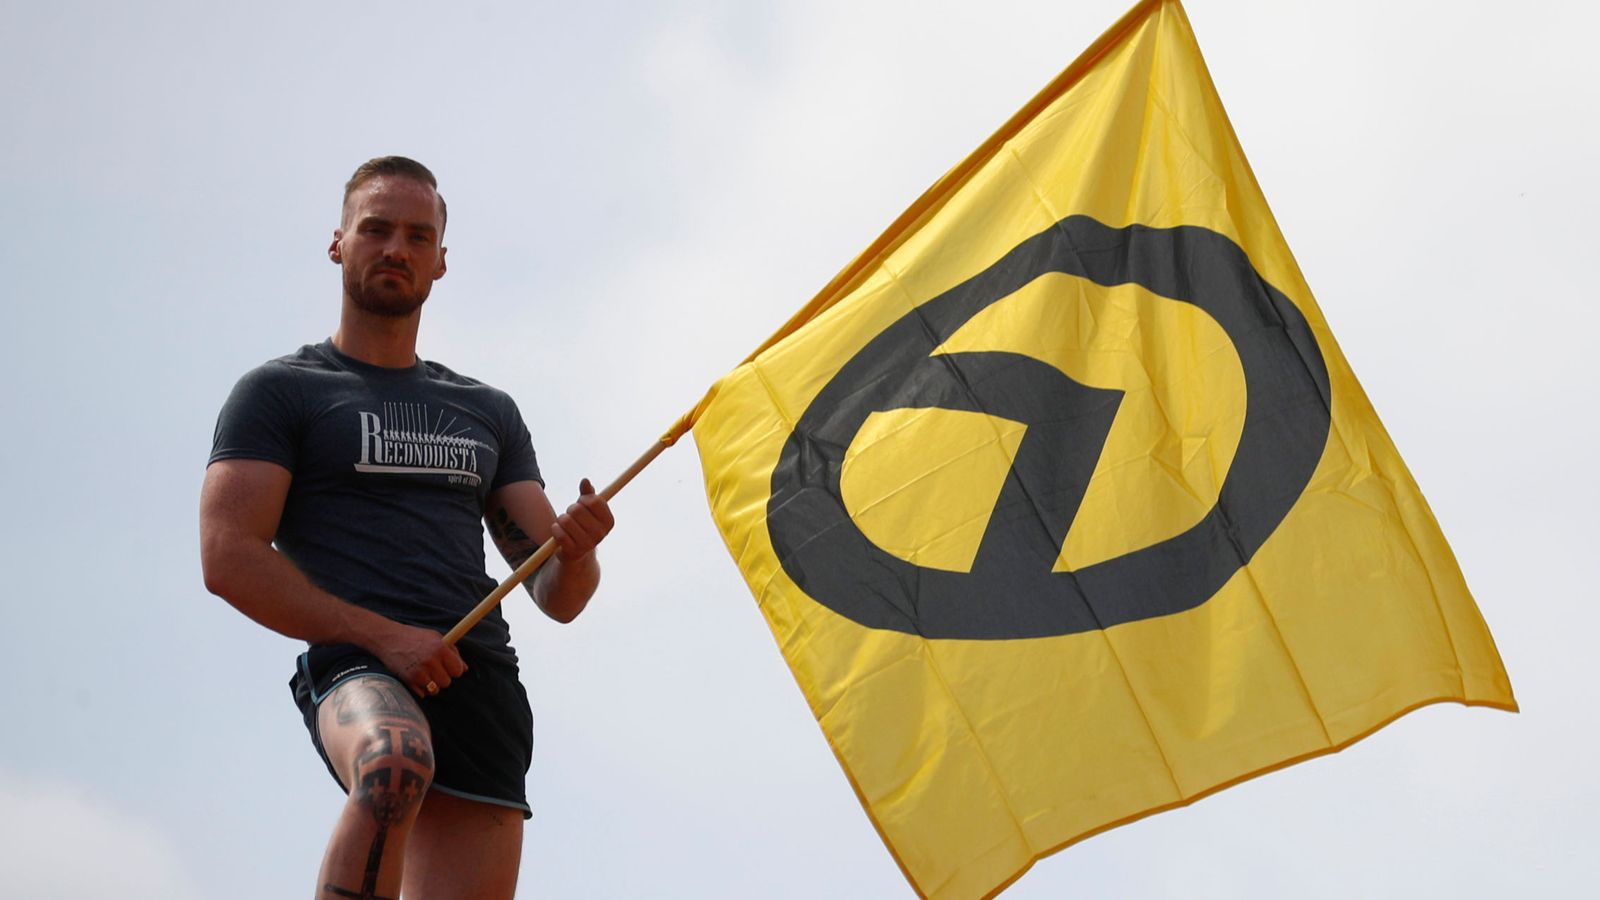 Foto: Supporter of far-right identitarian movement stands on the roof during rhe demonstration in halle